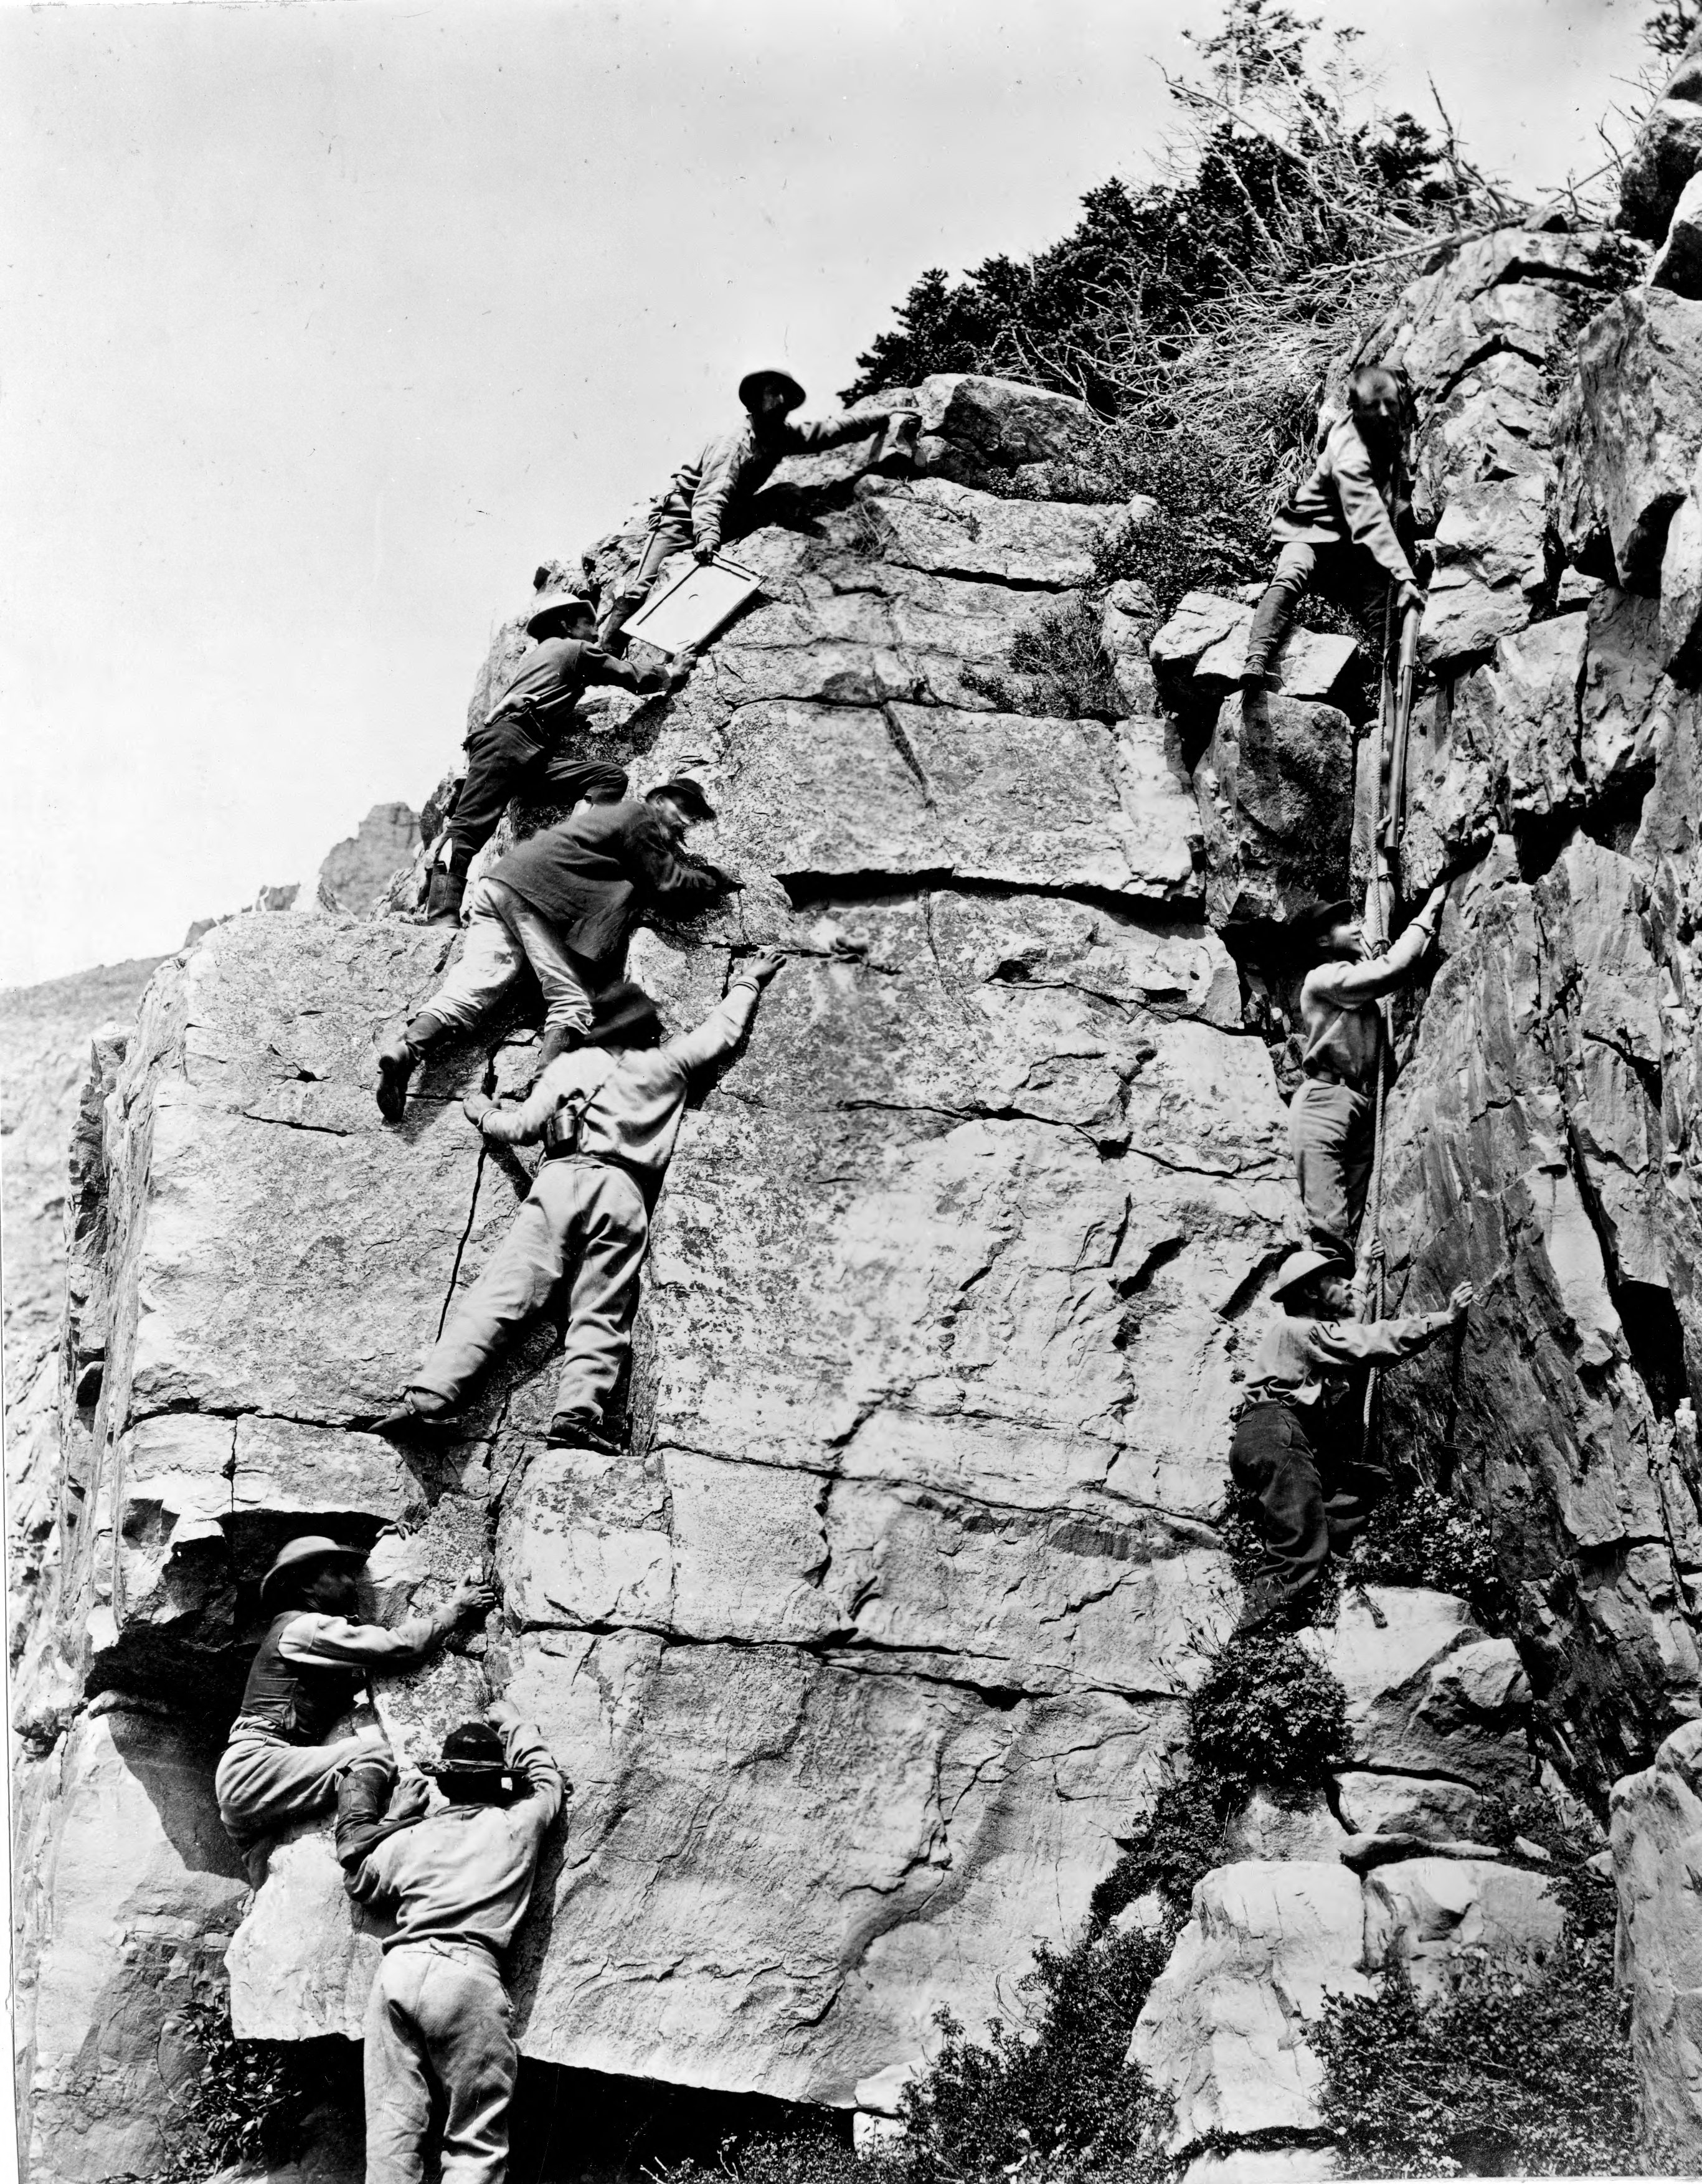 Latter-day Saints survey during construction of the transcontinental railroad in the Uintah Mountains of Utah for the Union Pacific Railroad.